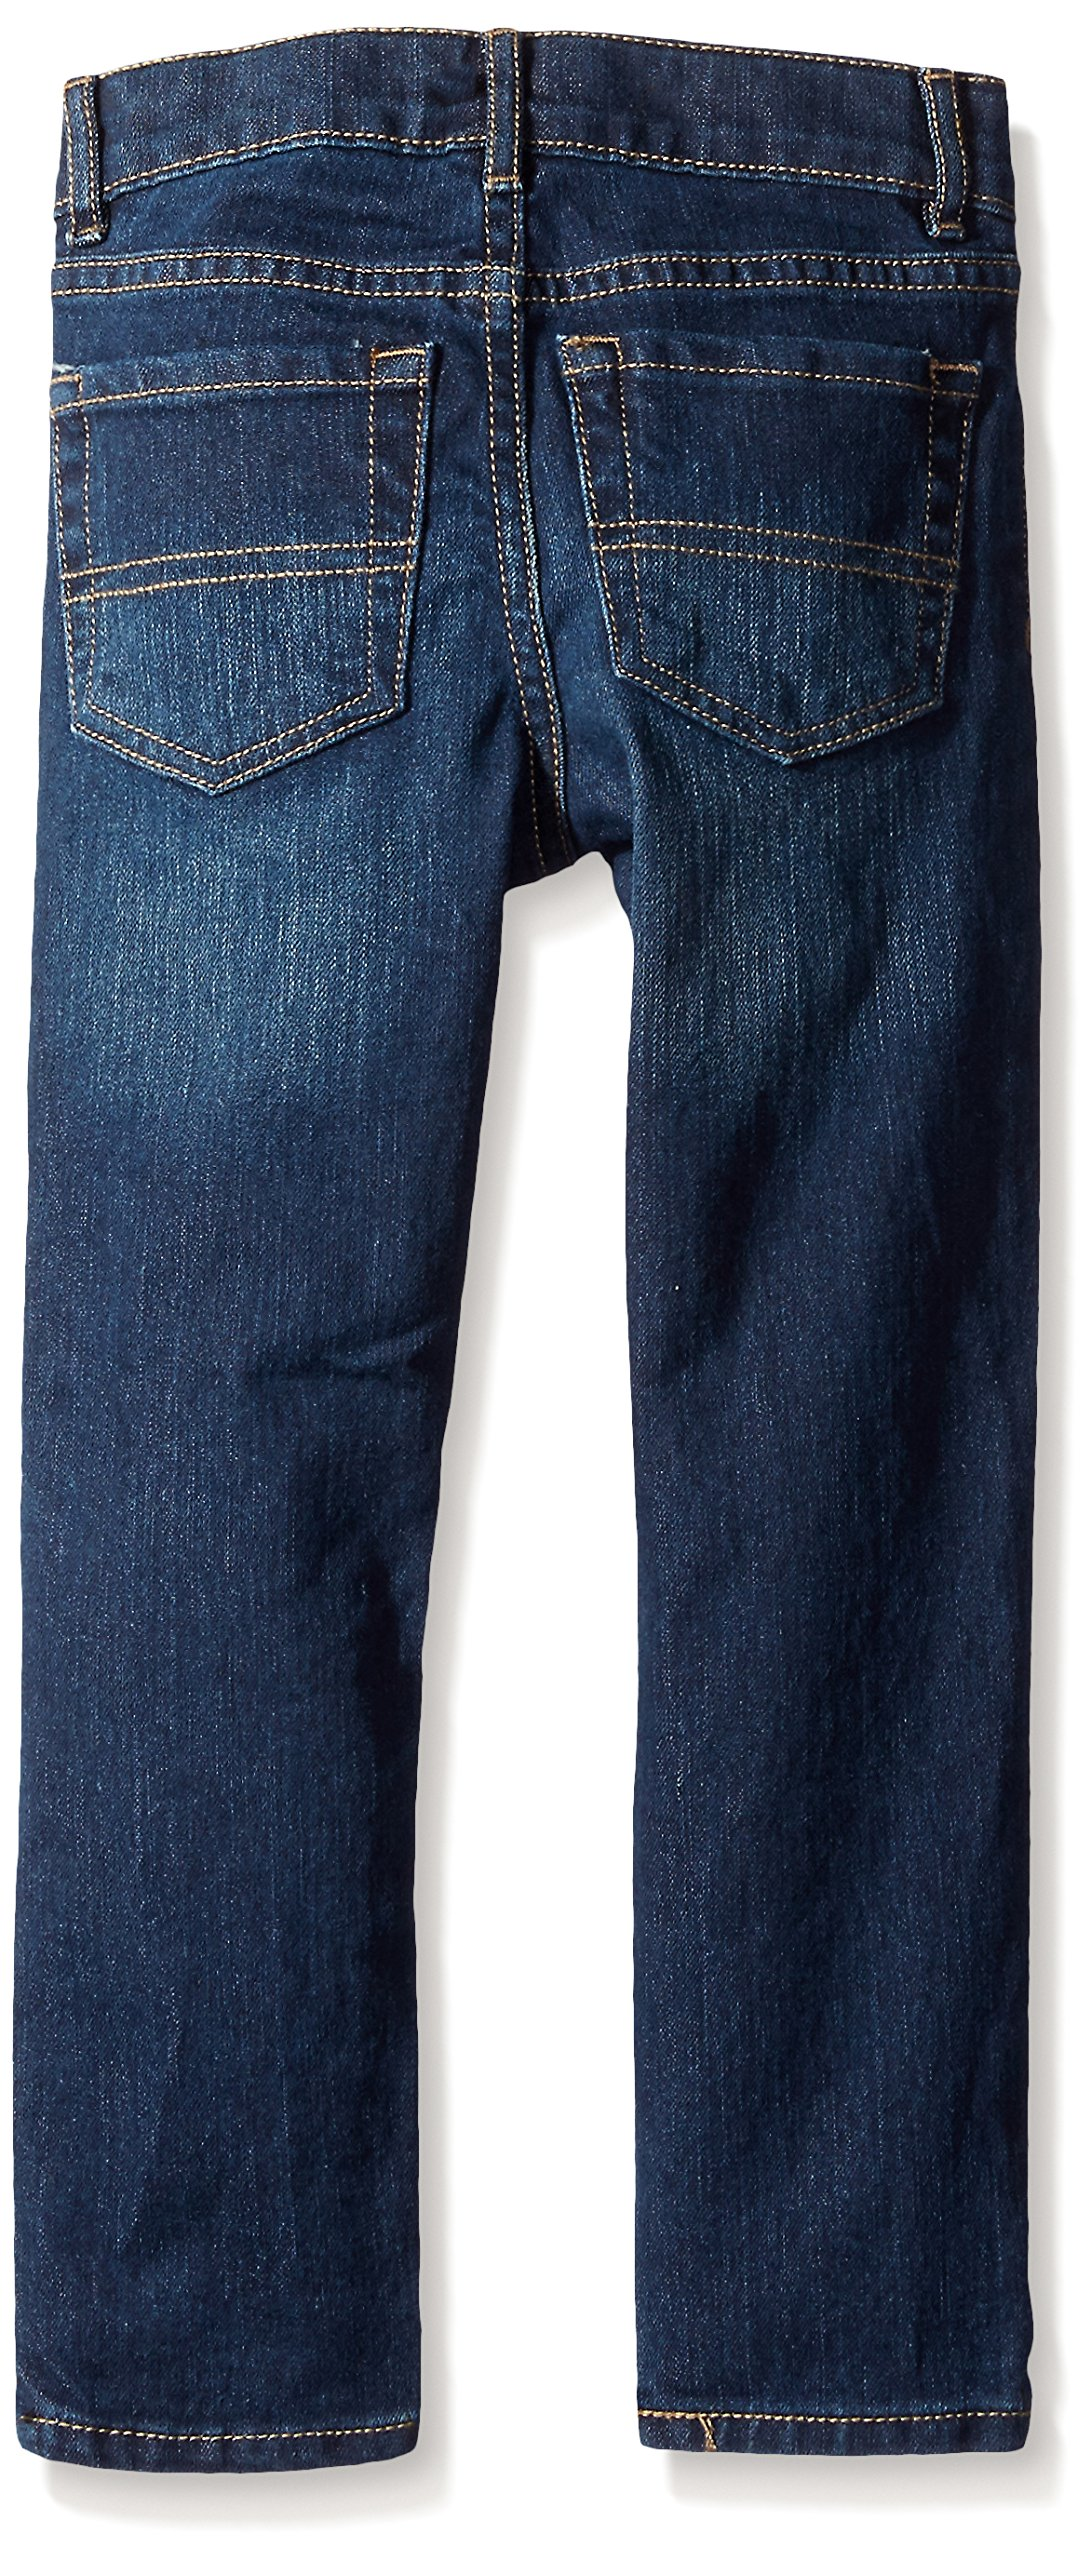 The Children's Place Big Boys Super Skinny Jeans, Dark Wear, 8 by The Children's Place (Image #2)